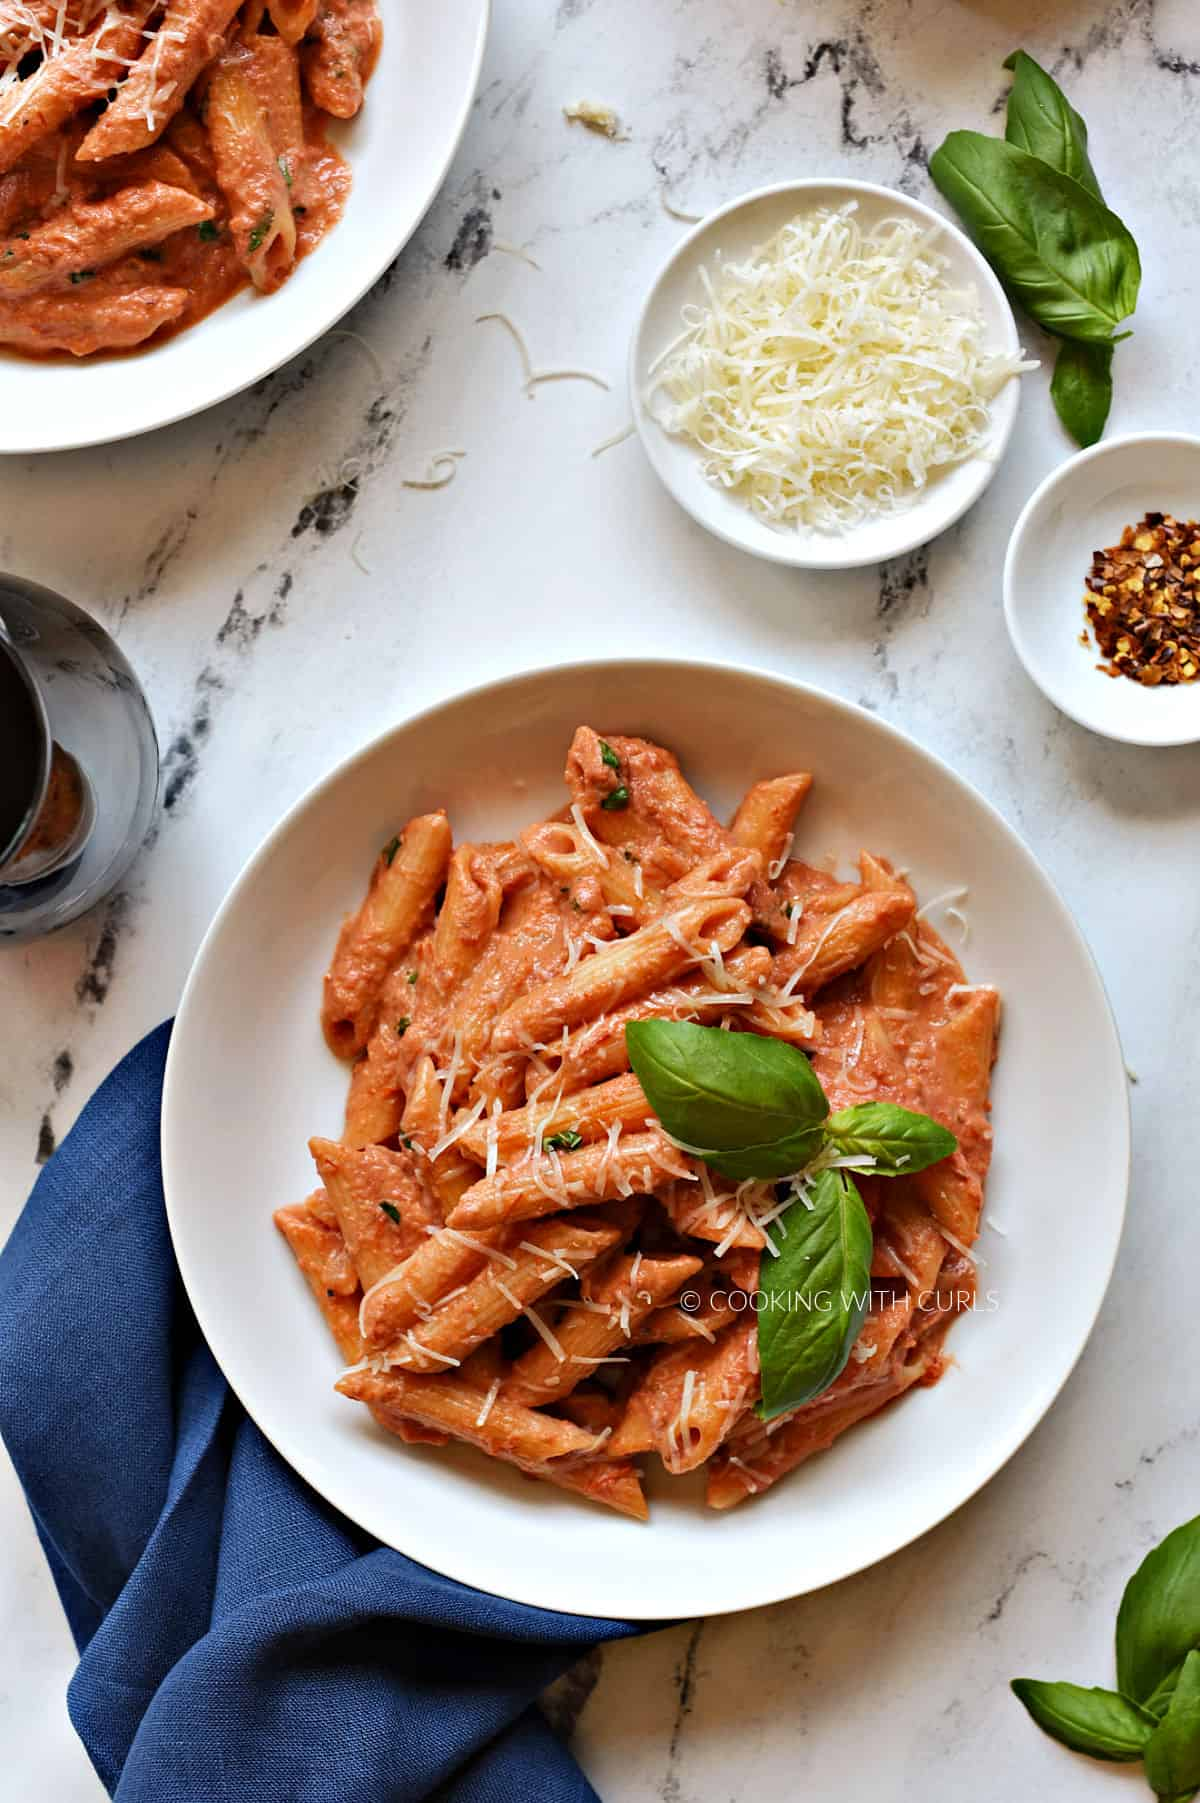 Creamy tomato sauce covered penne pasta garnished with grated cheese and fresh basil in a white bowl.